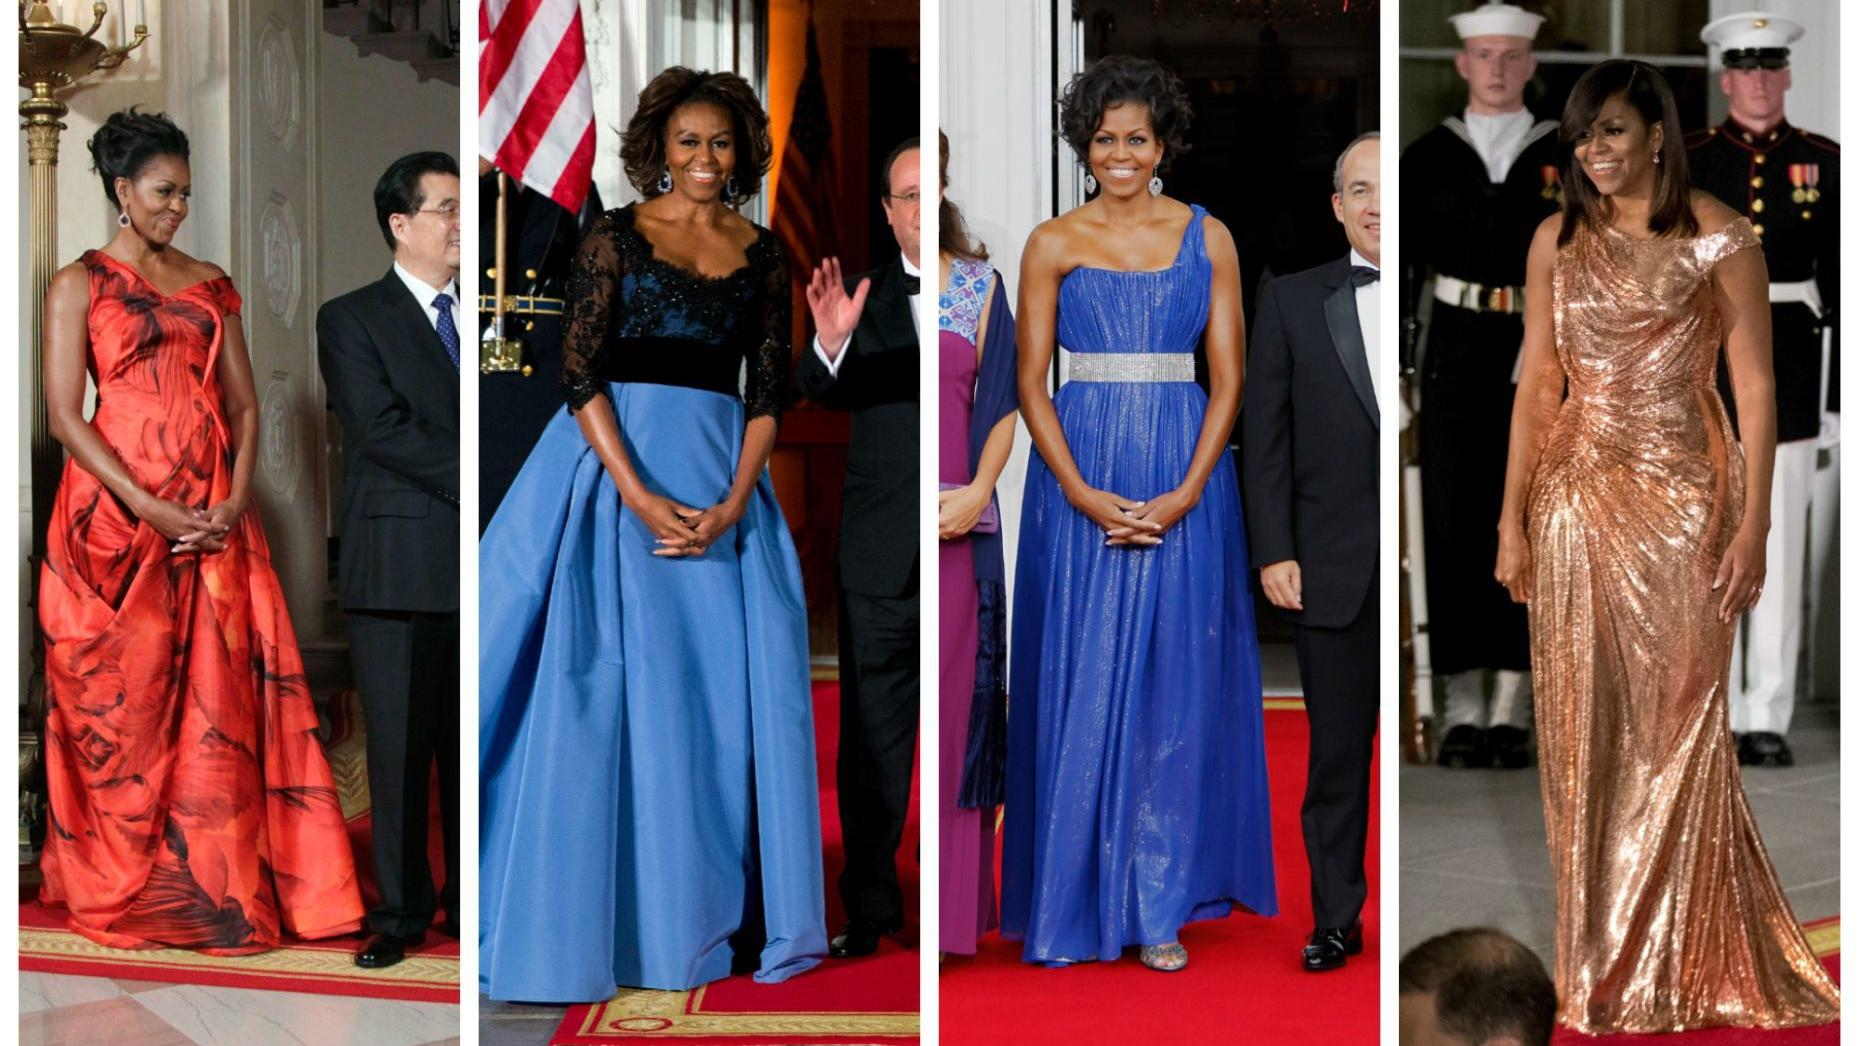 A look back at Michelle Obama's state dinner style